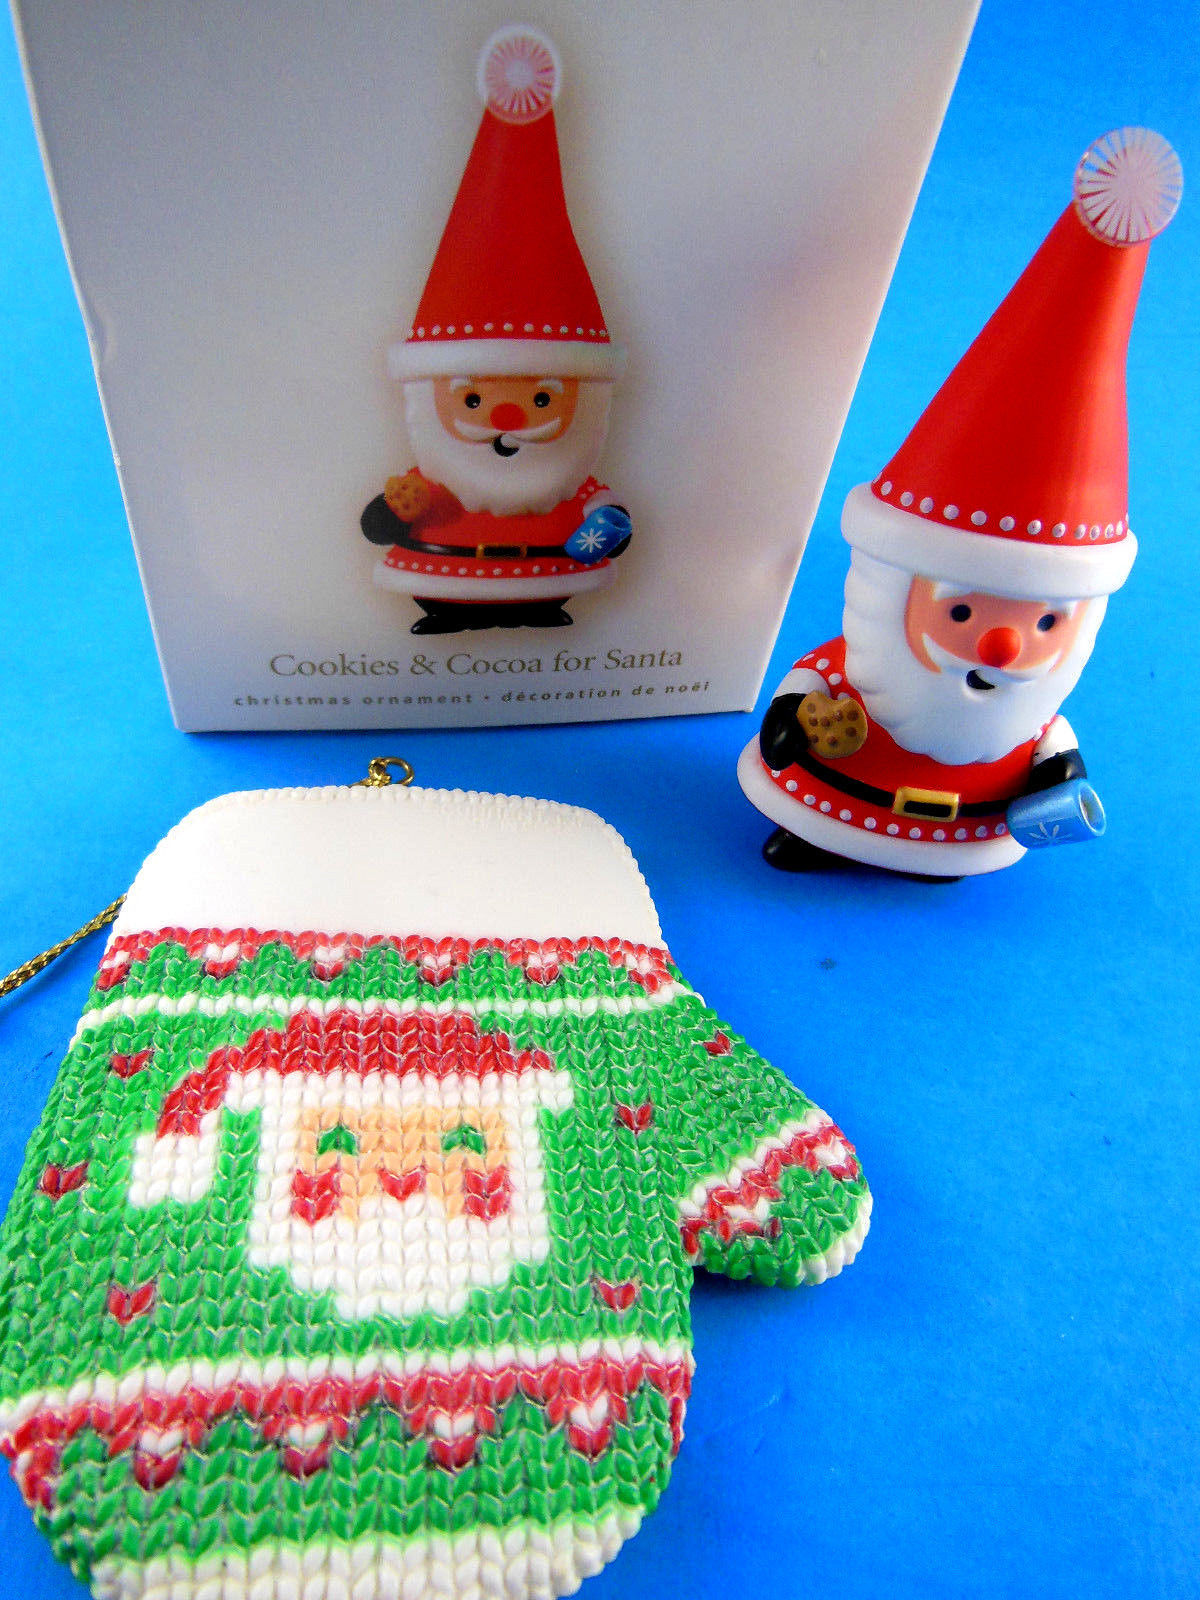 "Primary image for 2008 NEW Hallmark 3"" Cookies & Cocoa For Santa + Current 3.25"" Mitten ornaments"